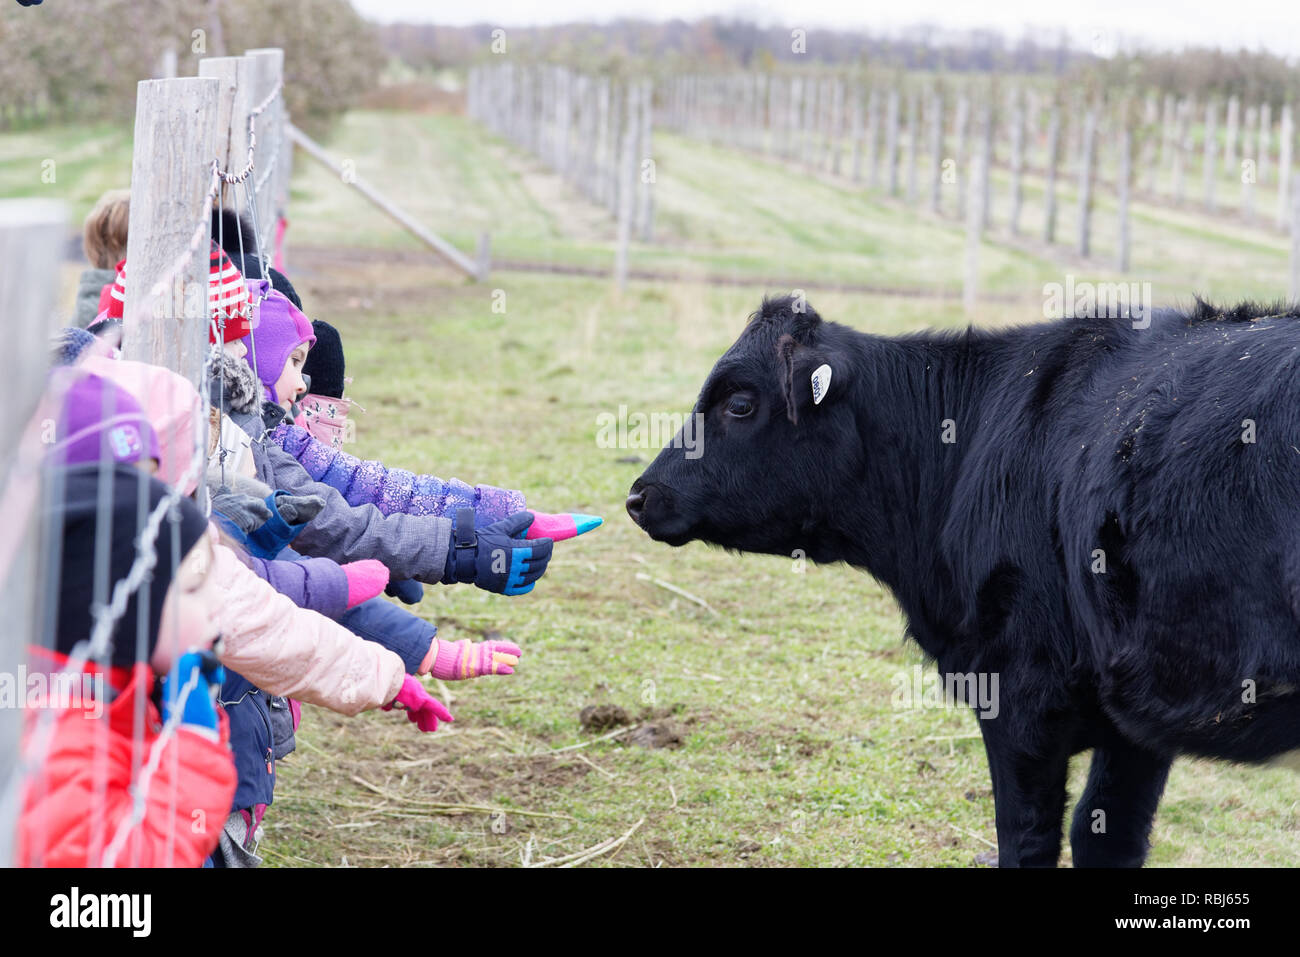 Children on a farm reaching through a fence to touch a black calf Stock Photo